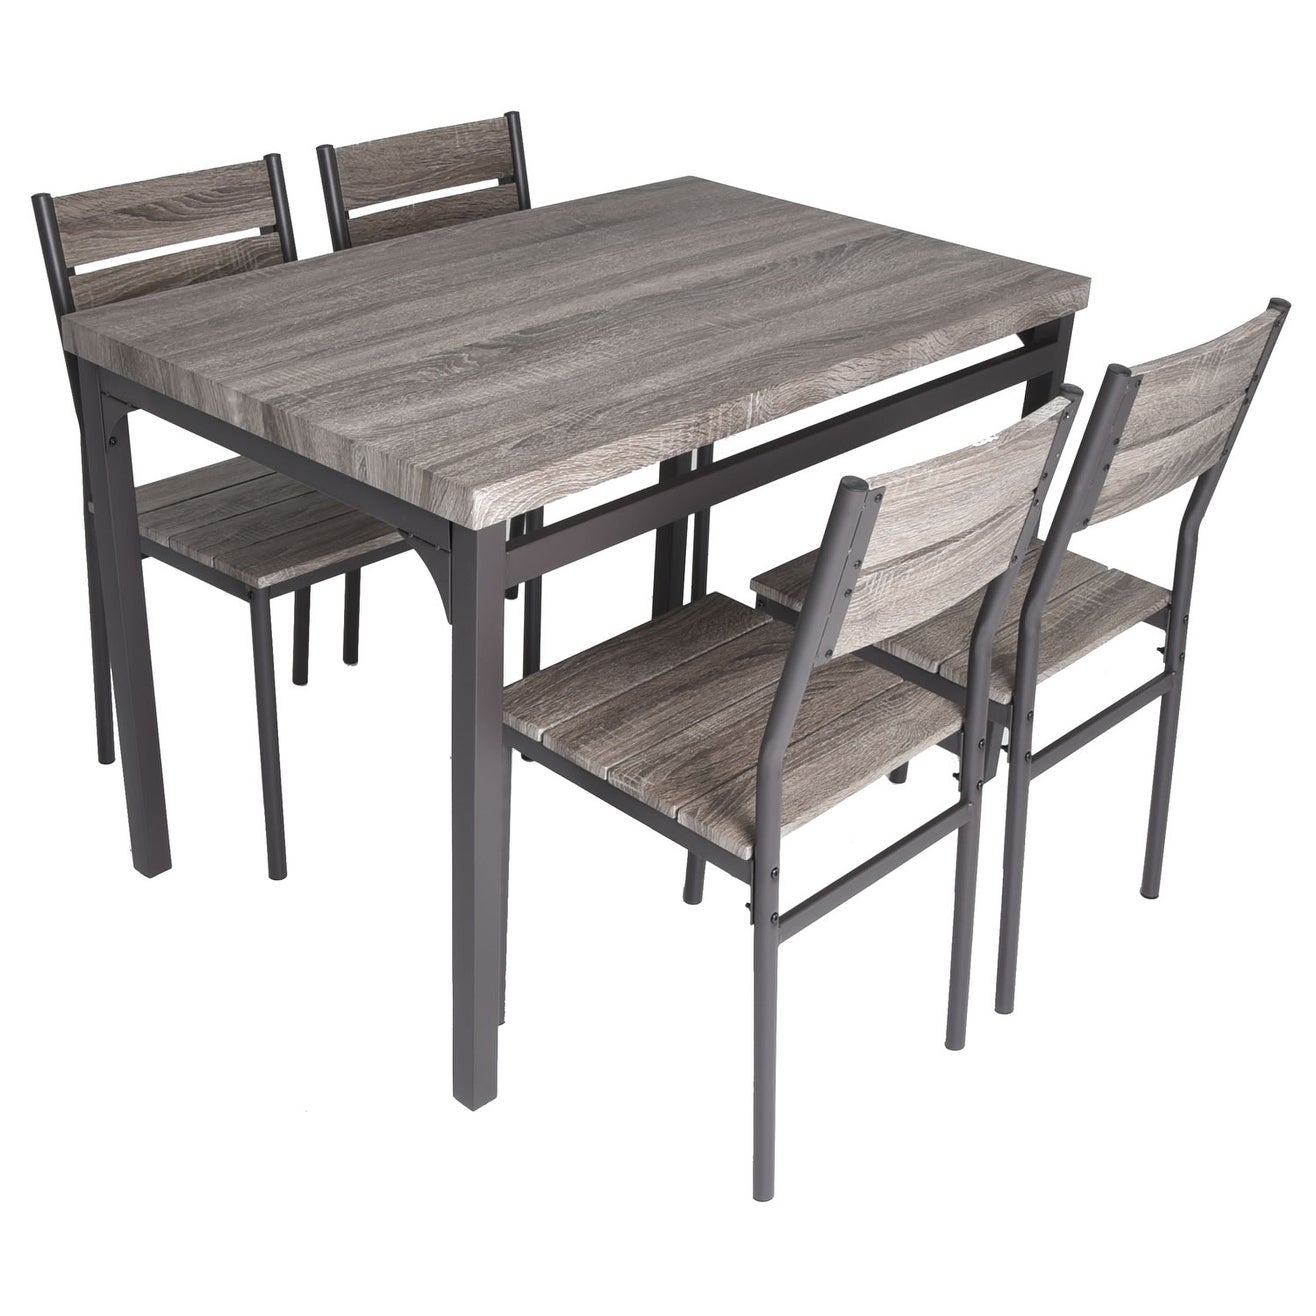 Zenvida 5 Piece Dining Set Rustic Grey Wooden Kitchen Table and 4 ...